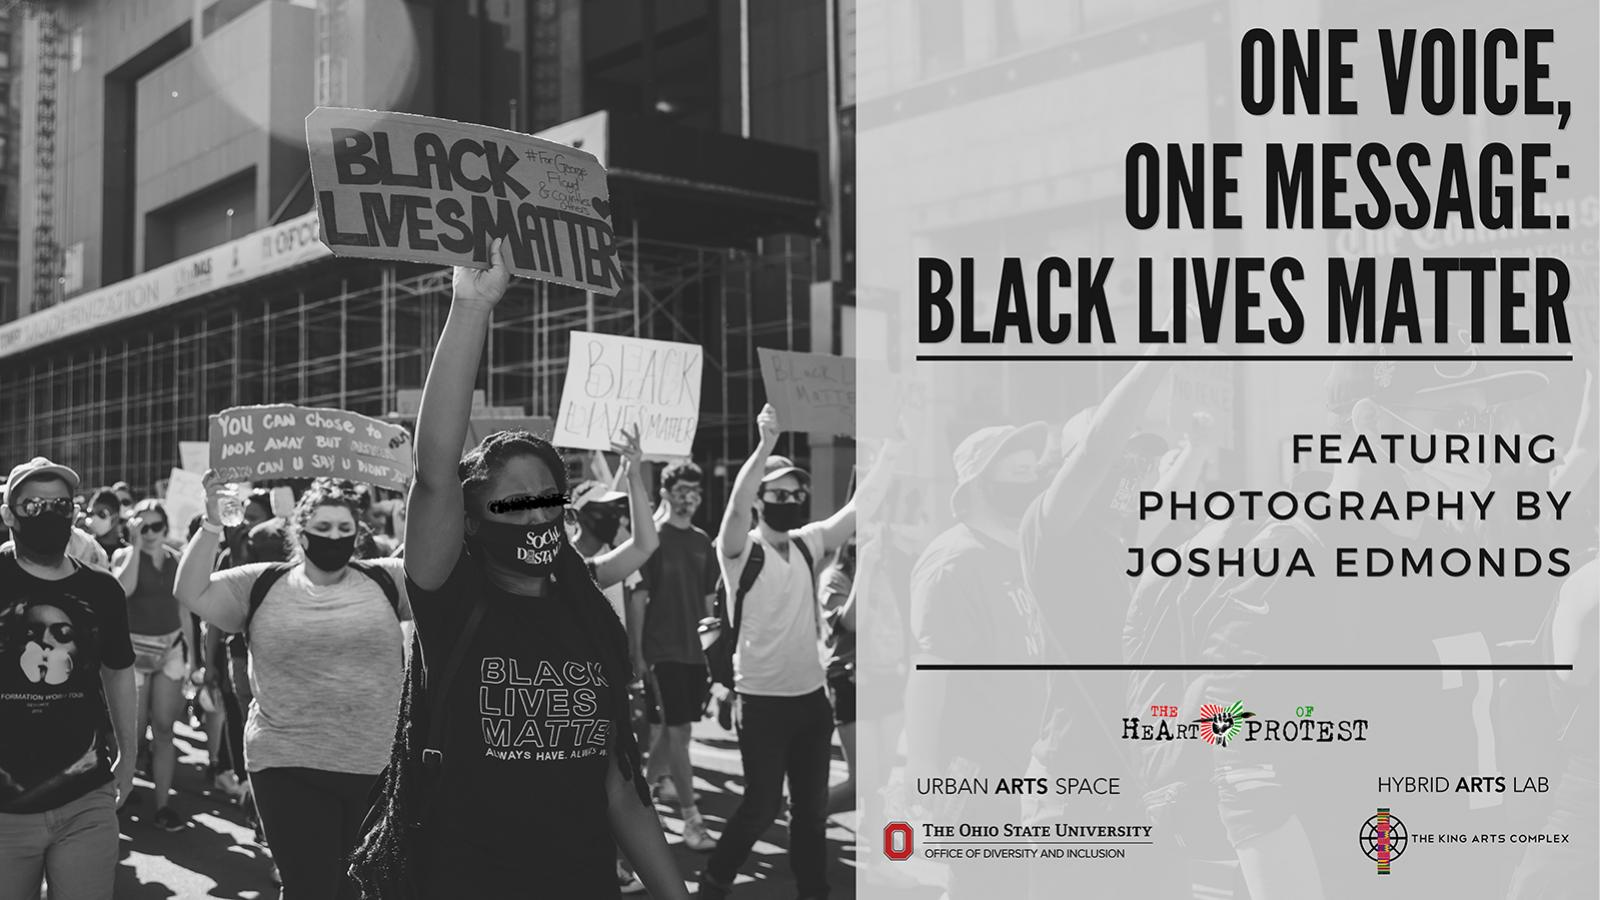 "One Voice, One Message exhibition Banner. The left half of the rectangular image shows Black Lives Matter protestors marching (from left to right) and holding signs that read ""BLACK LIVES MATTER."" The right half of the image has text that reads: One Voice, One Message: Black Lives Matter; featuring photography by Joshua Edmonds. At the bottom of the right half of the image, five sponsors are listed with their logos."